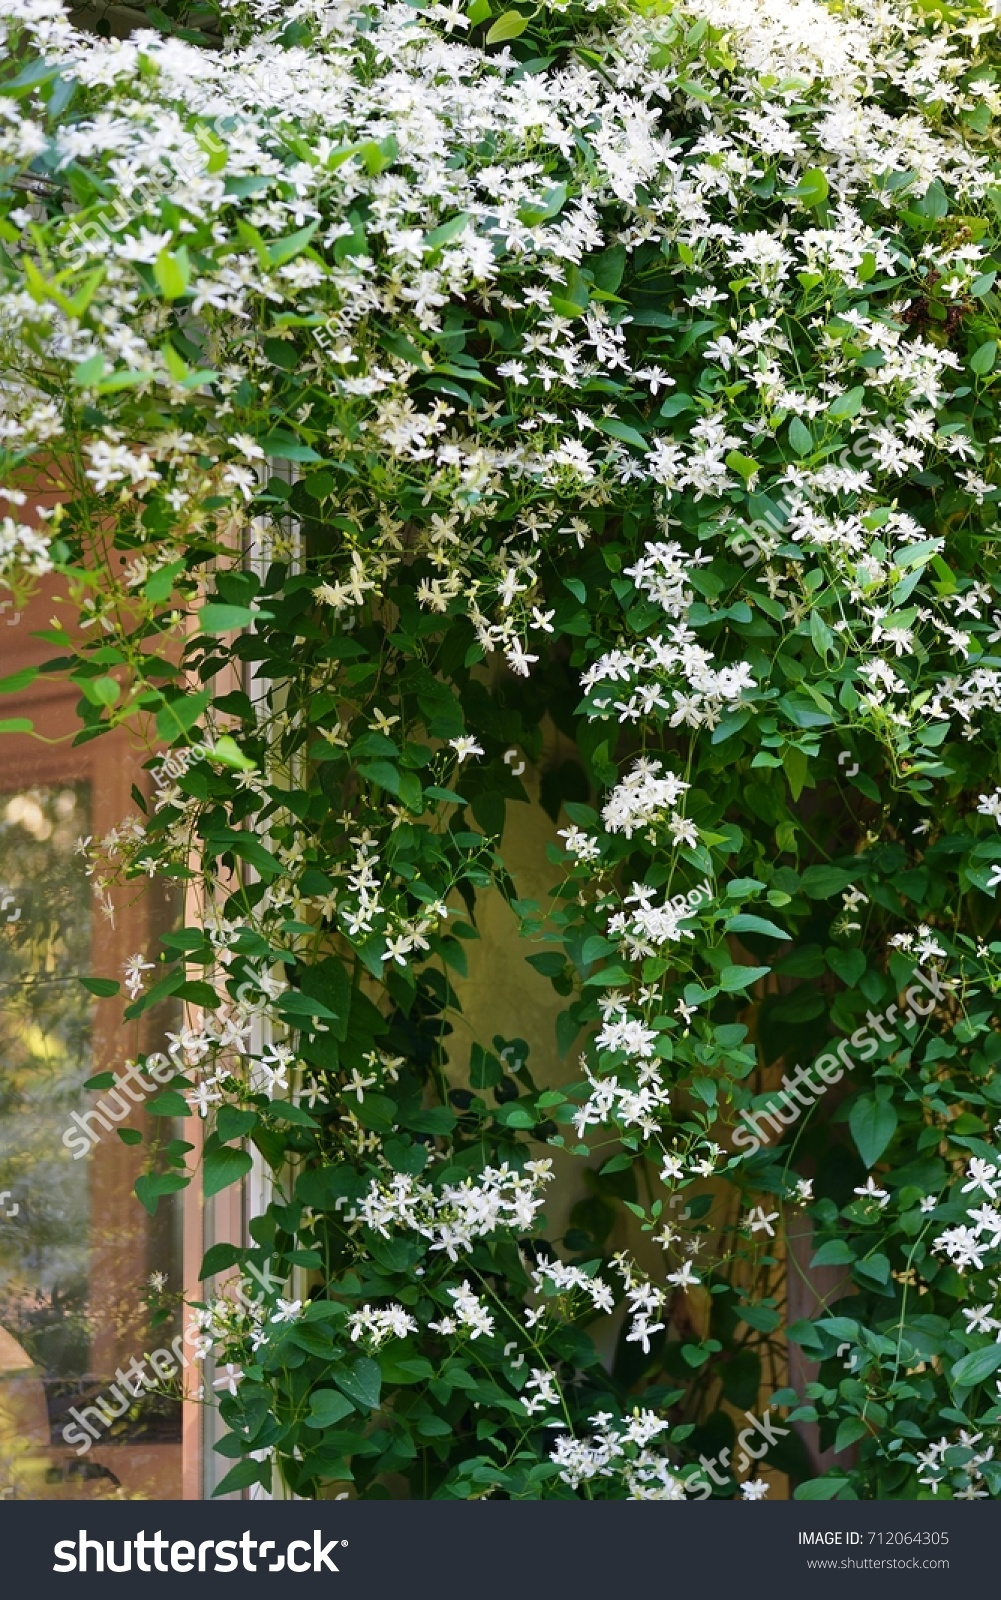 White Flowers Nonclimbing Clematis Vine Recta Stock Photo Edit Now